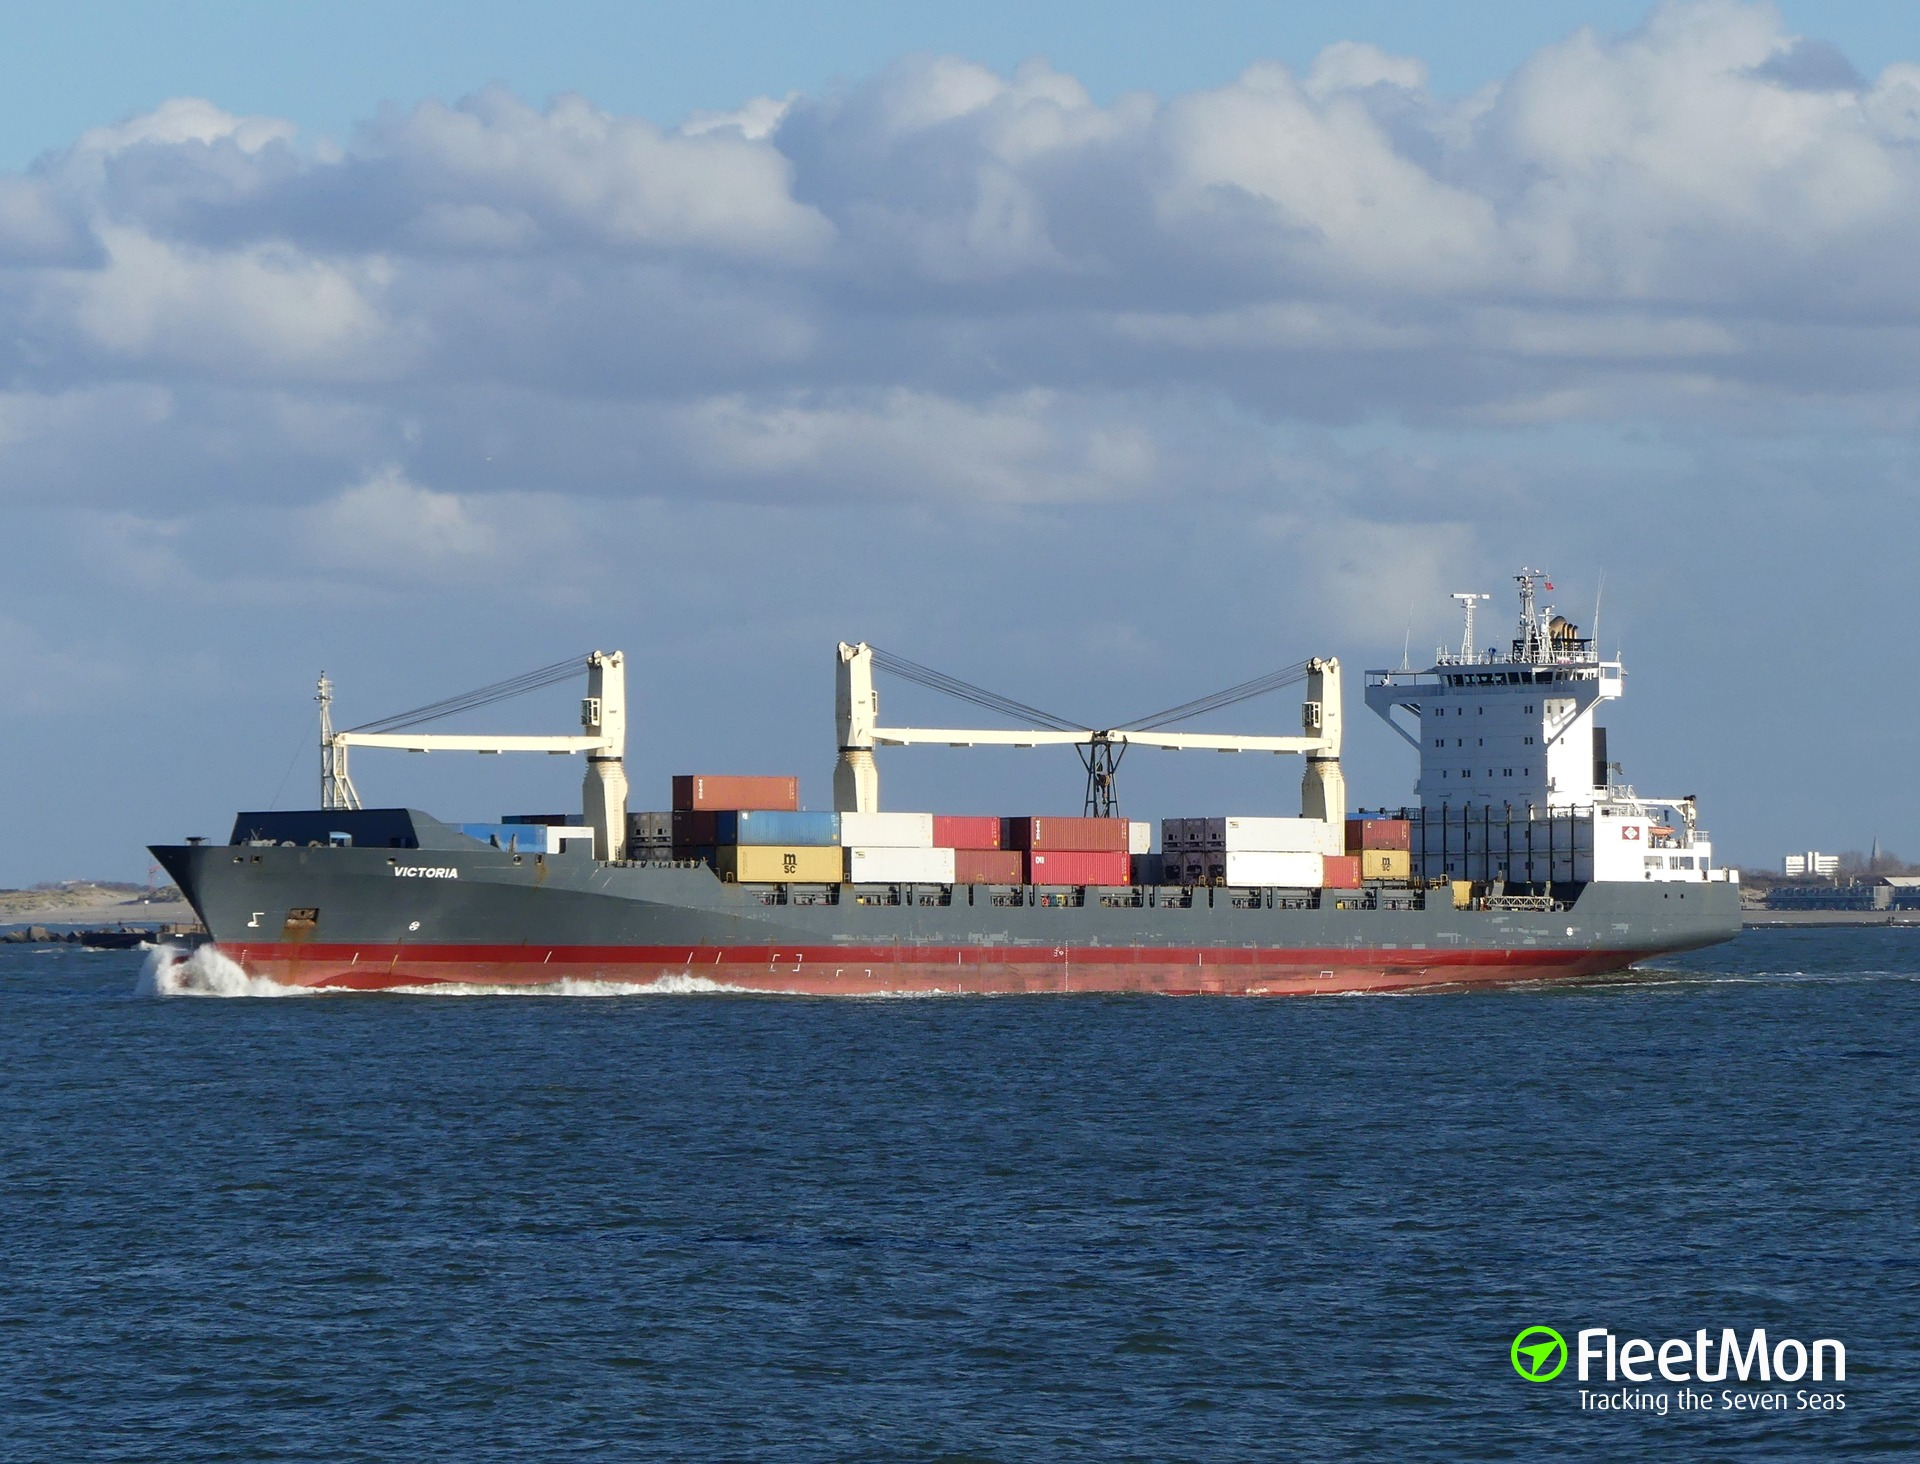 Container ship VICTORIA accident in Denmark waters